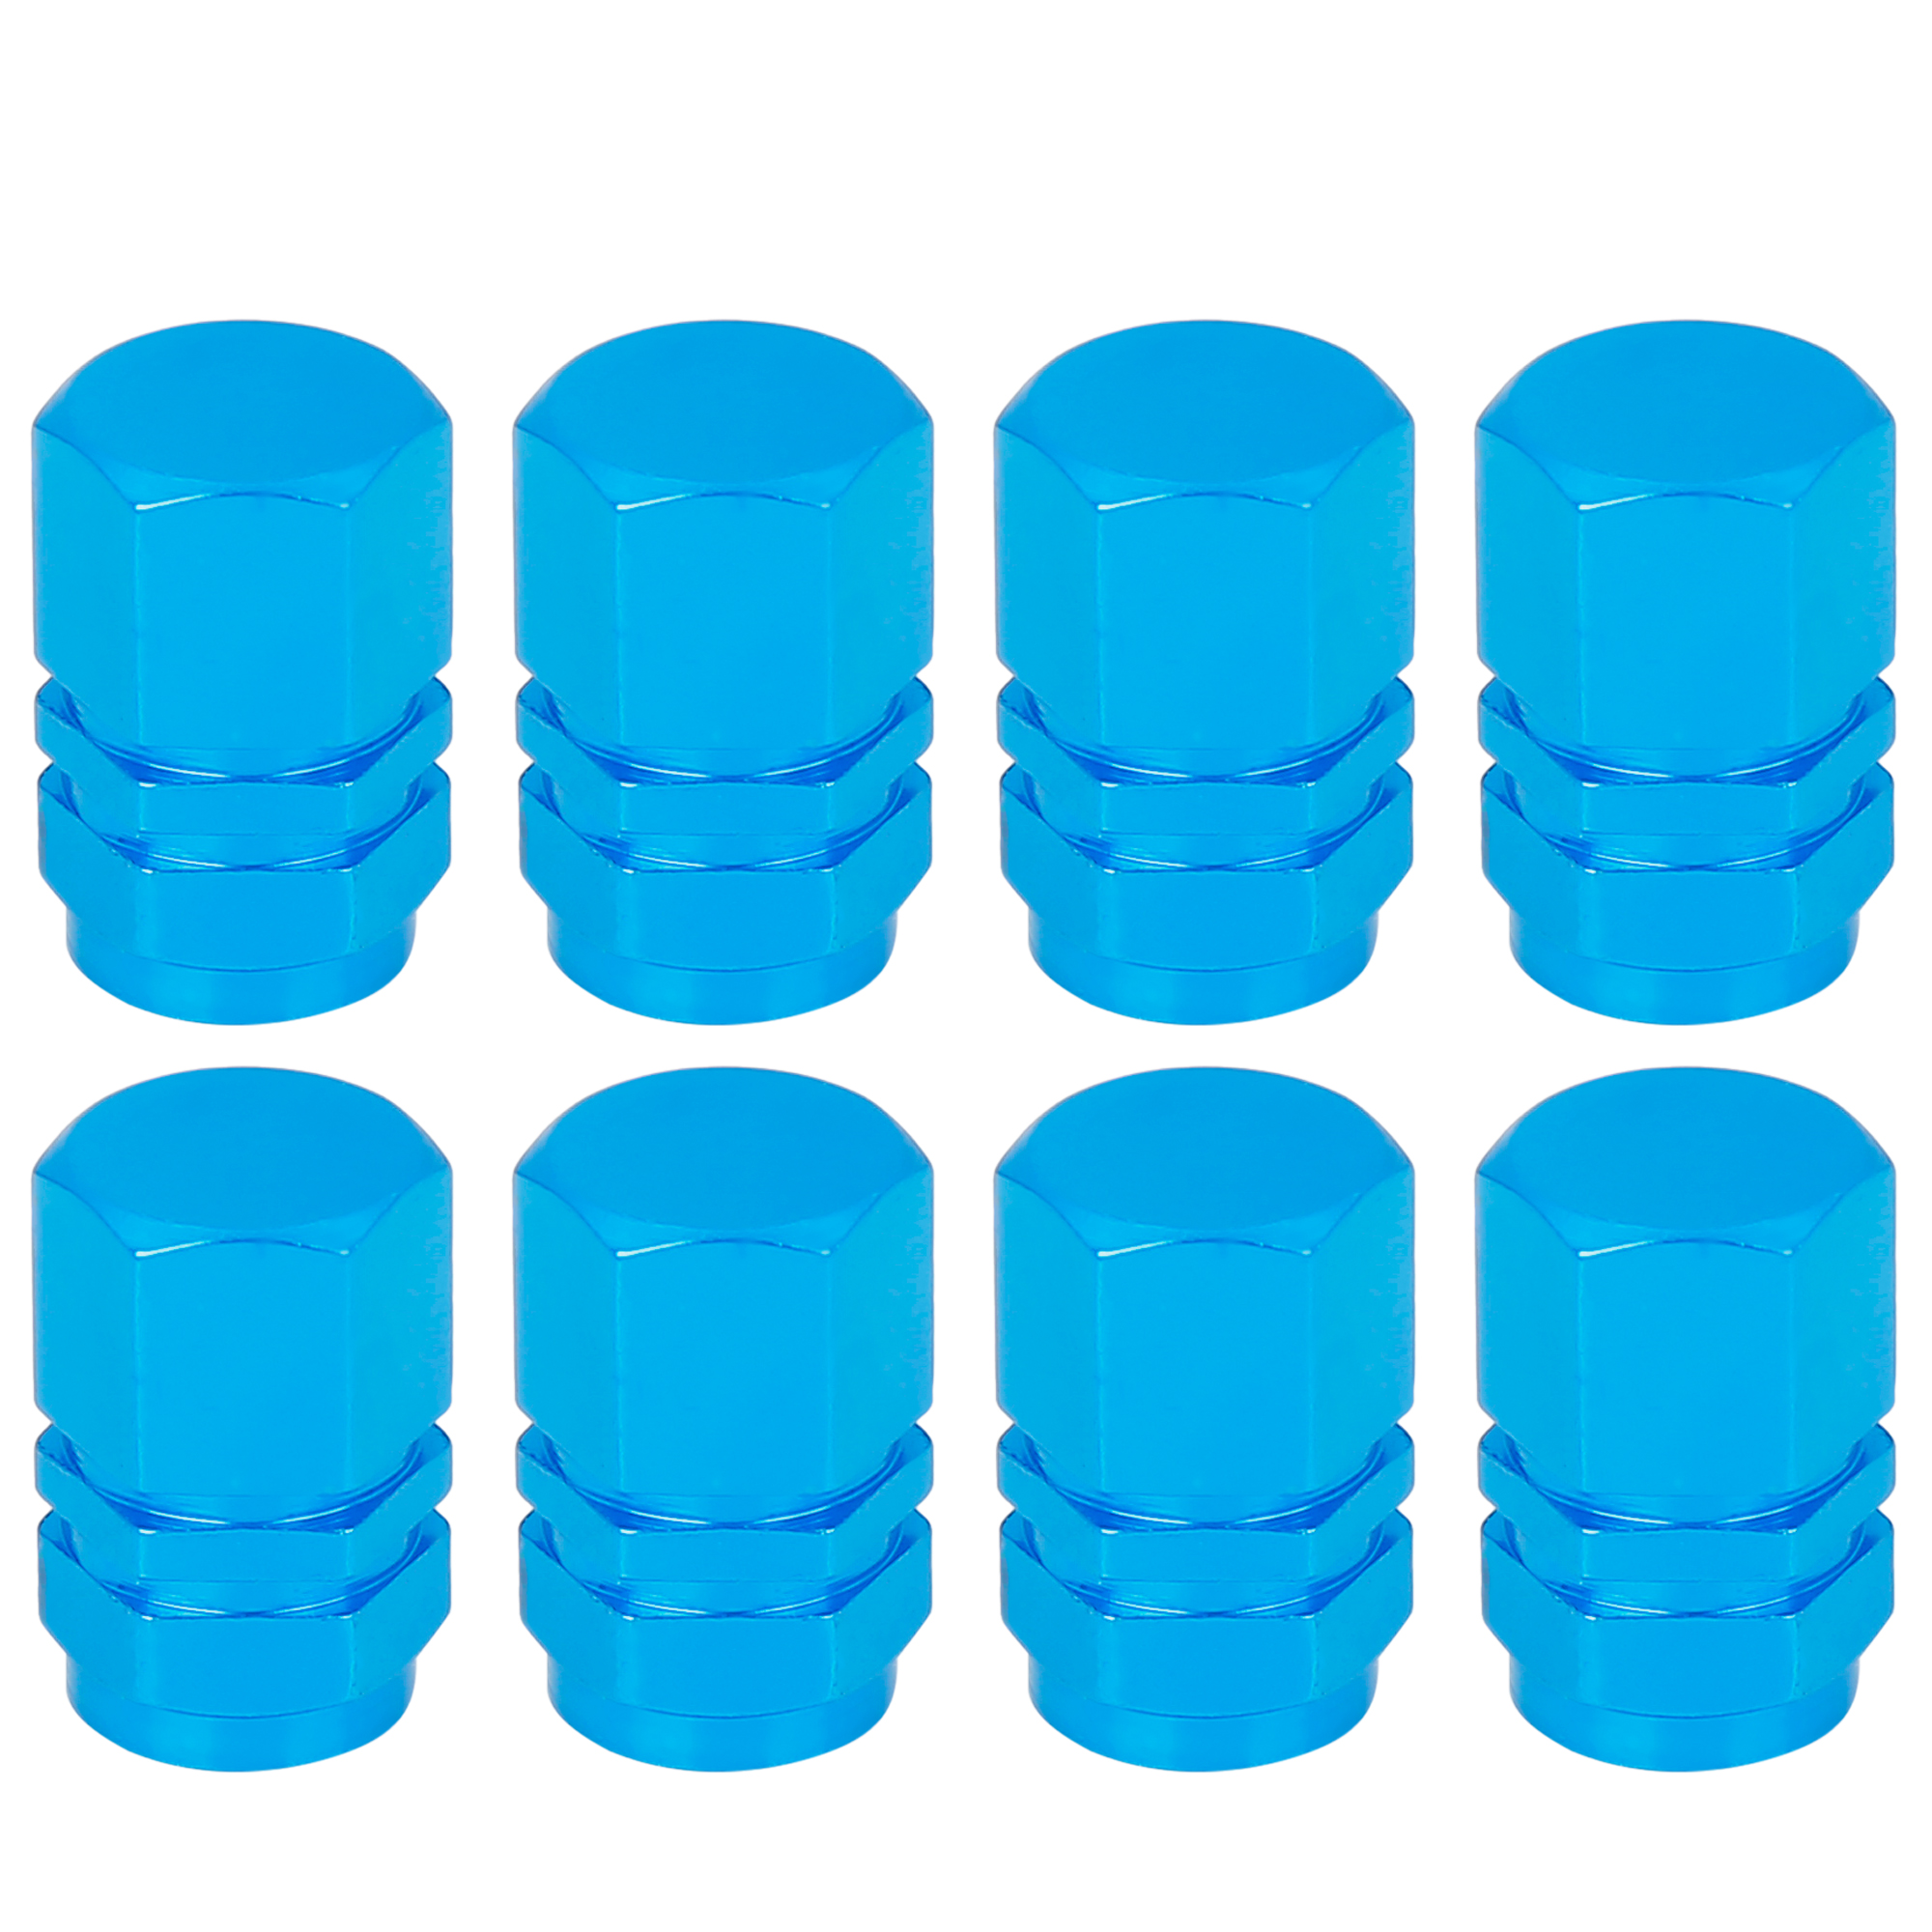 8pcs Blue Tire Stem Valve Caps Car Dustproof Hexagon Shape Aluminium Alloy